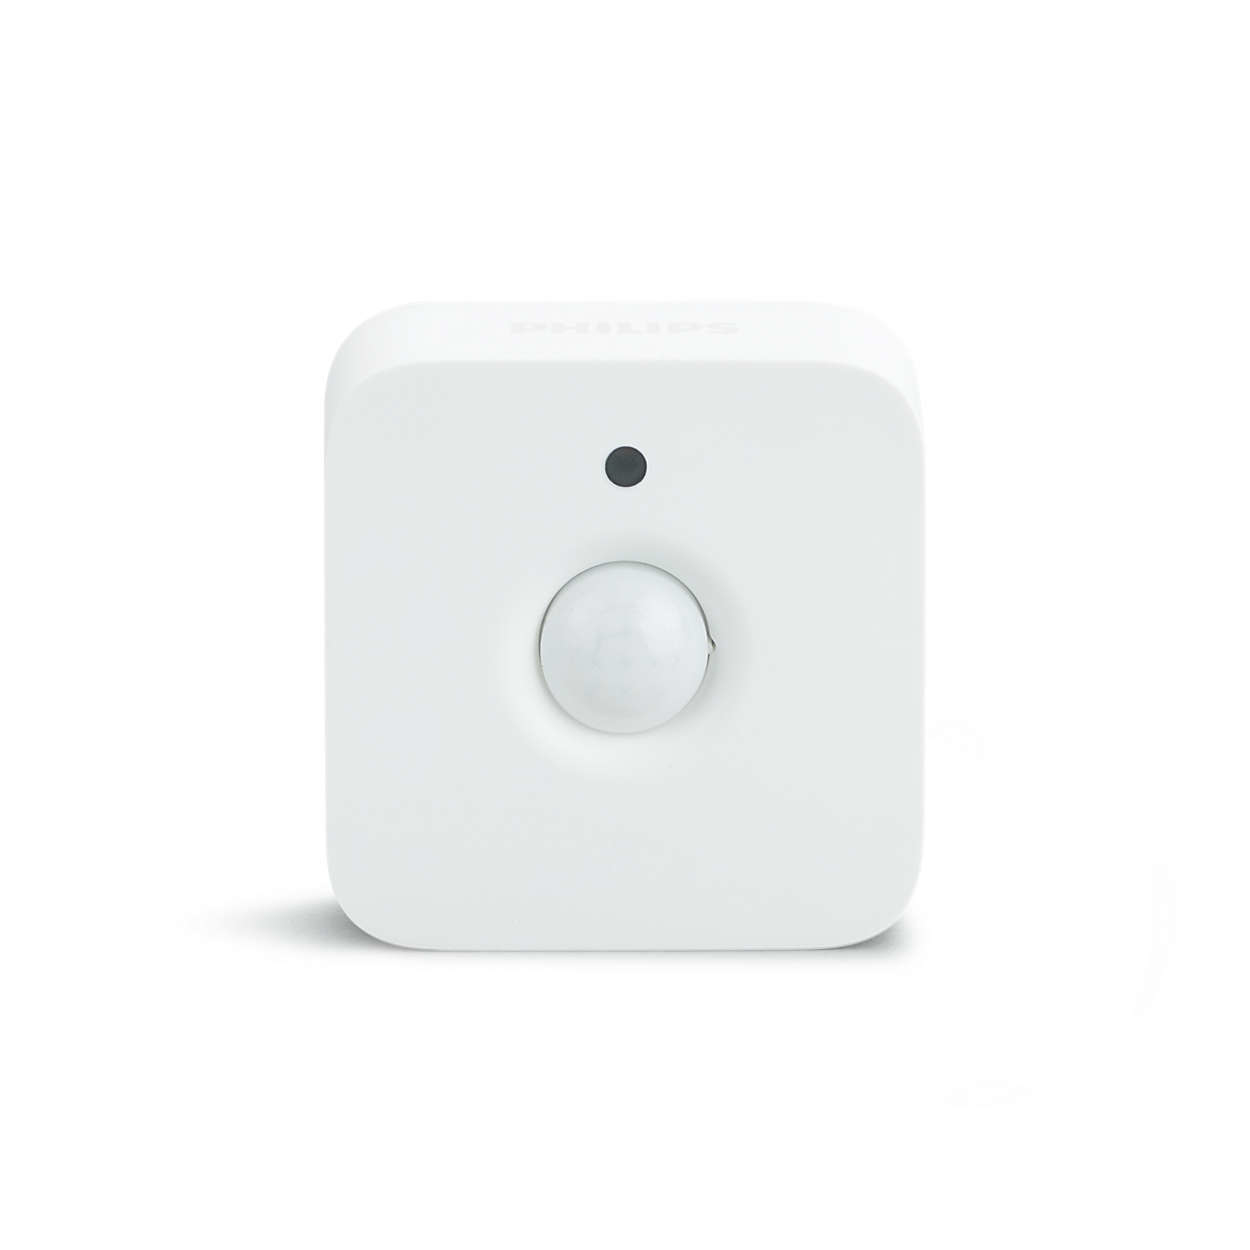 Philips HUE Sensore di movimento - 74317100